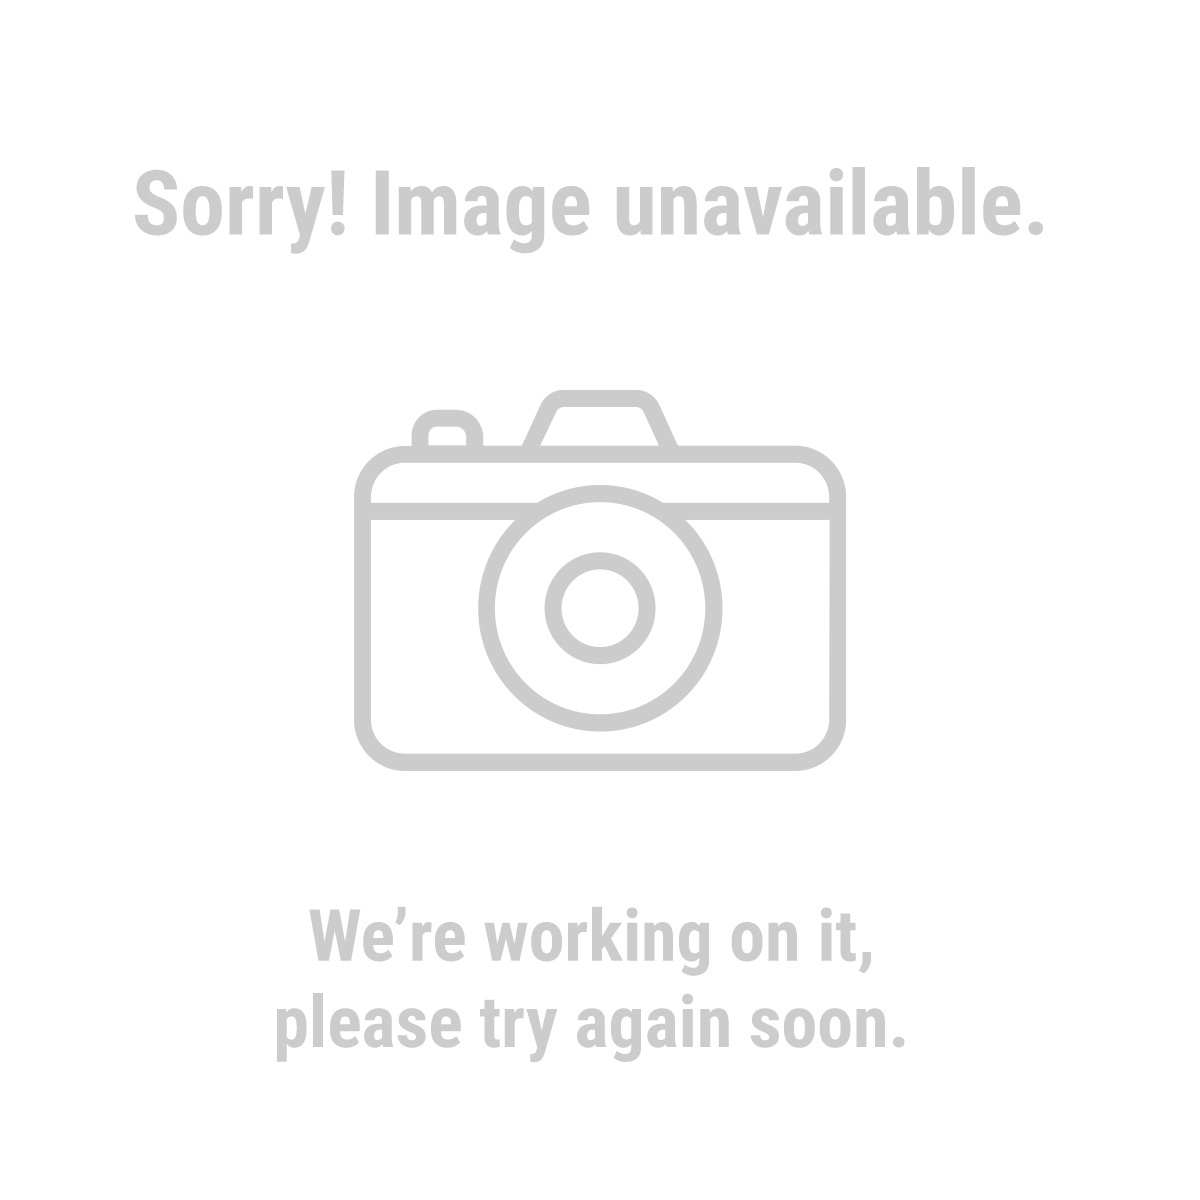 Central Forge 97153 Jaw & Jaw Swivel